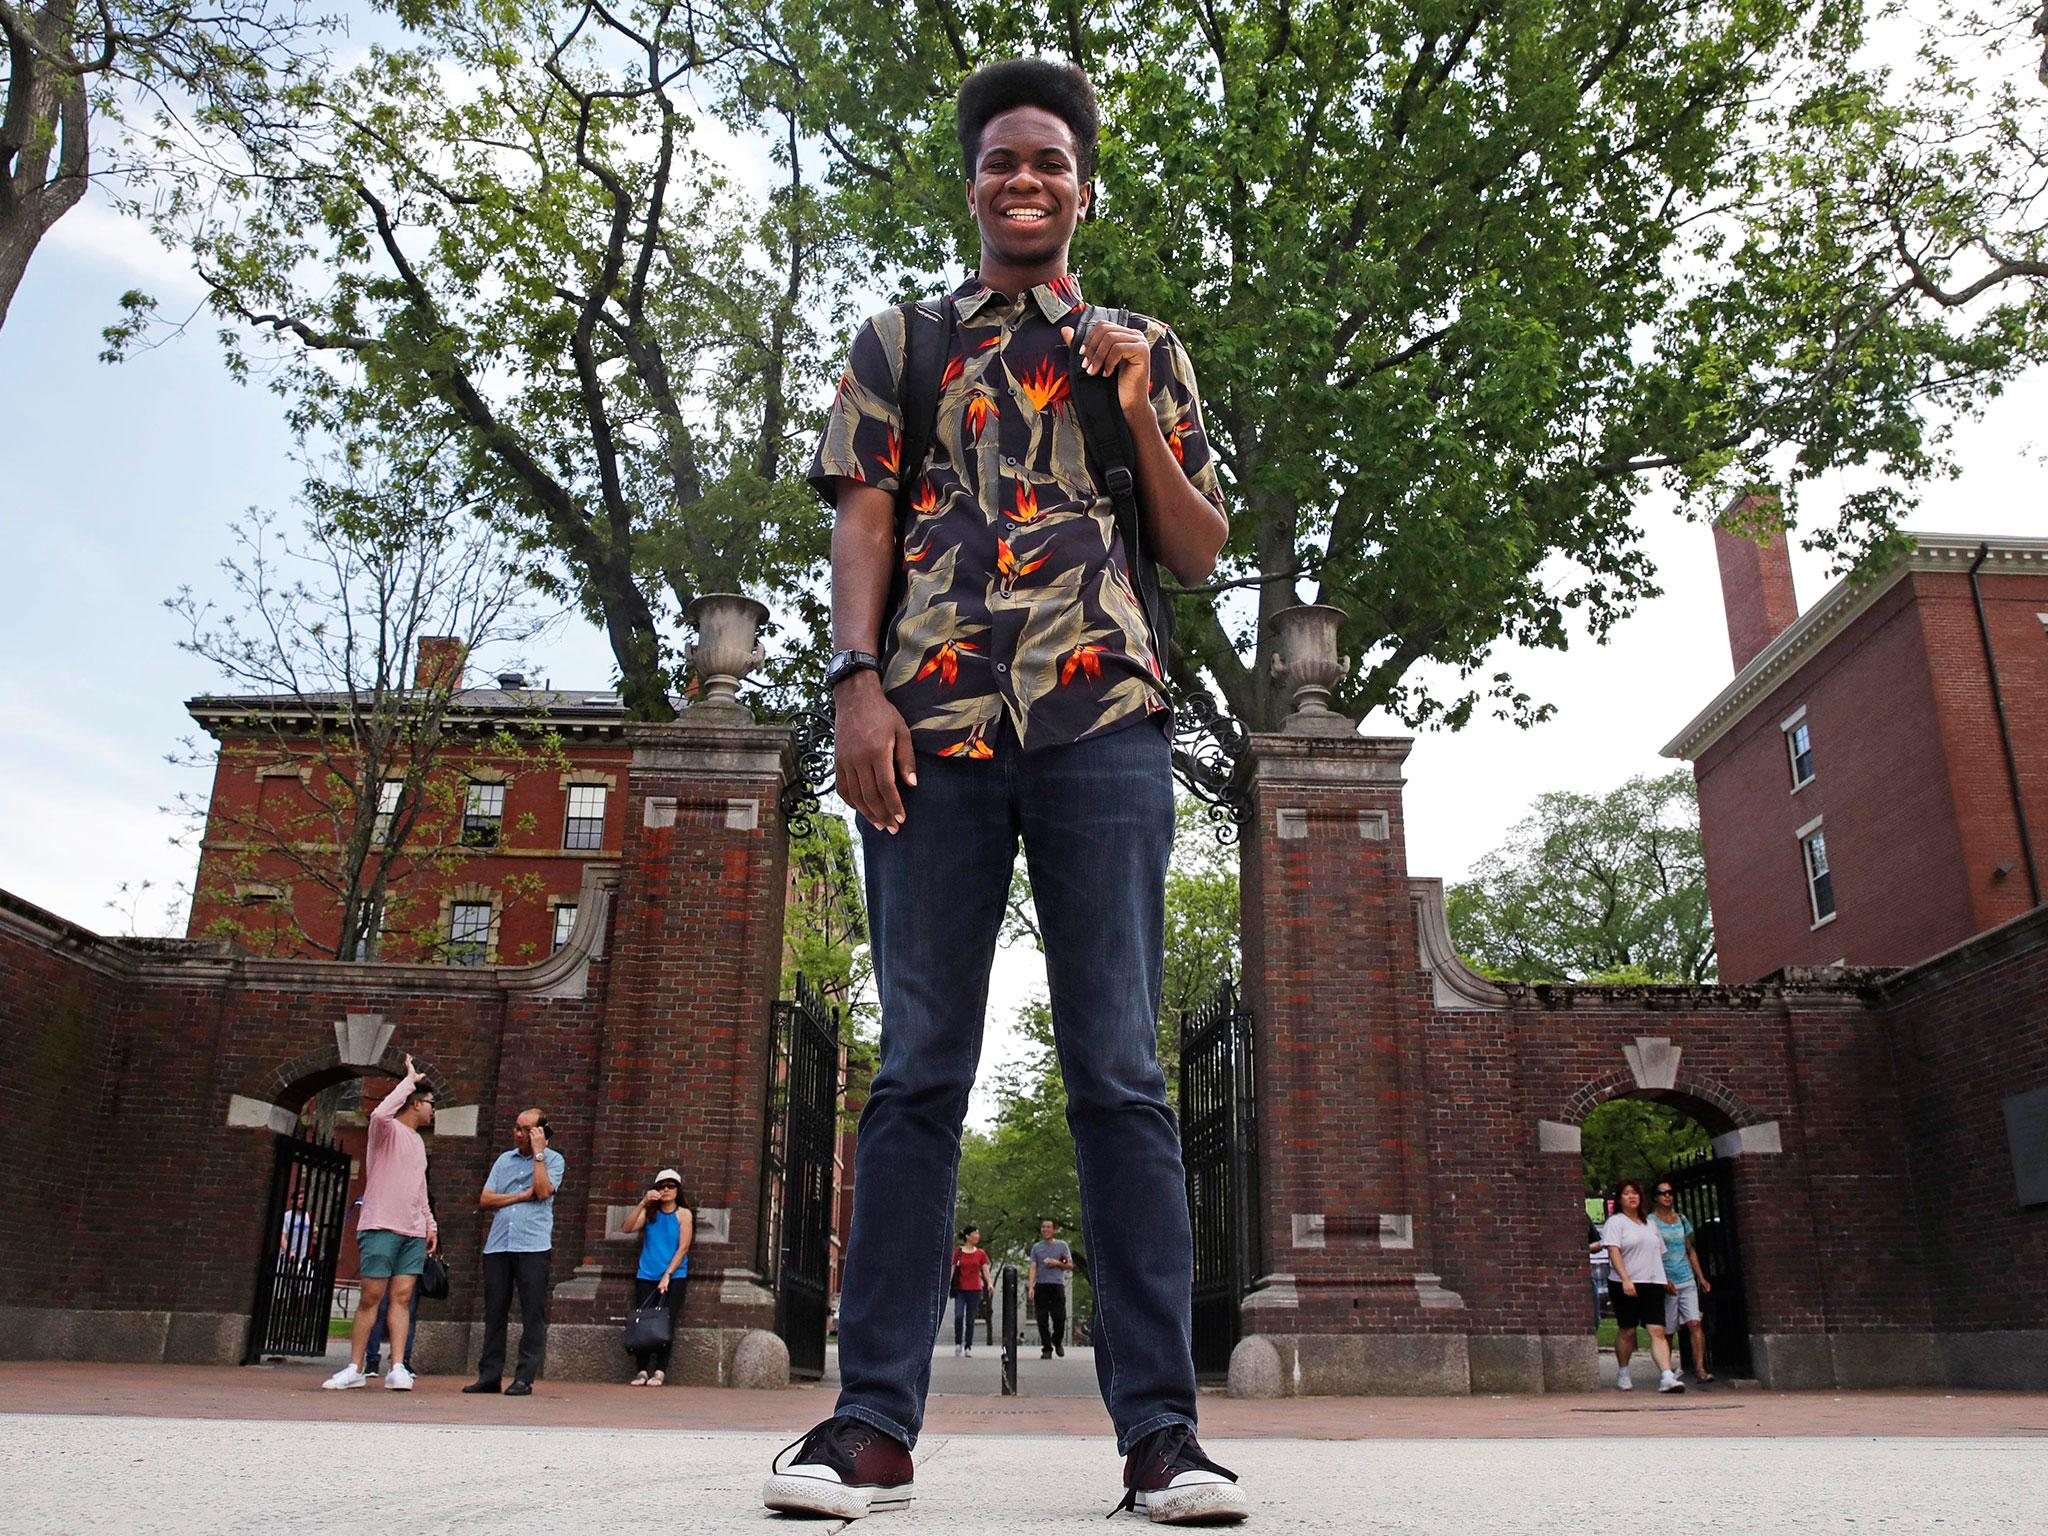 Harvard student graduates with honours after submitting rap album as final year thesis